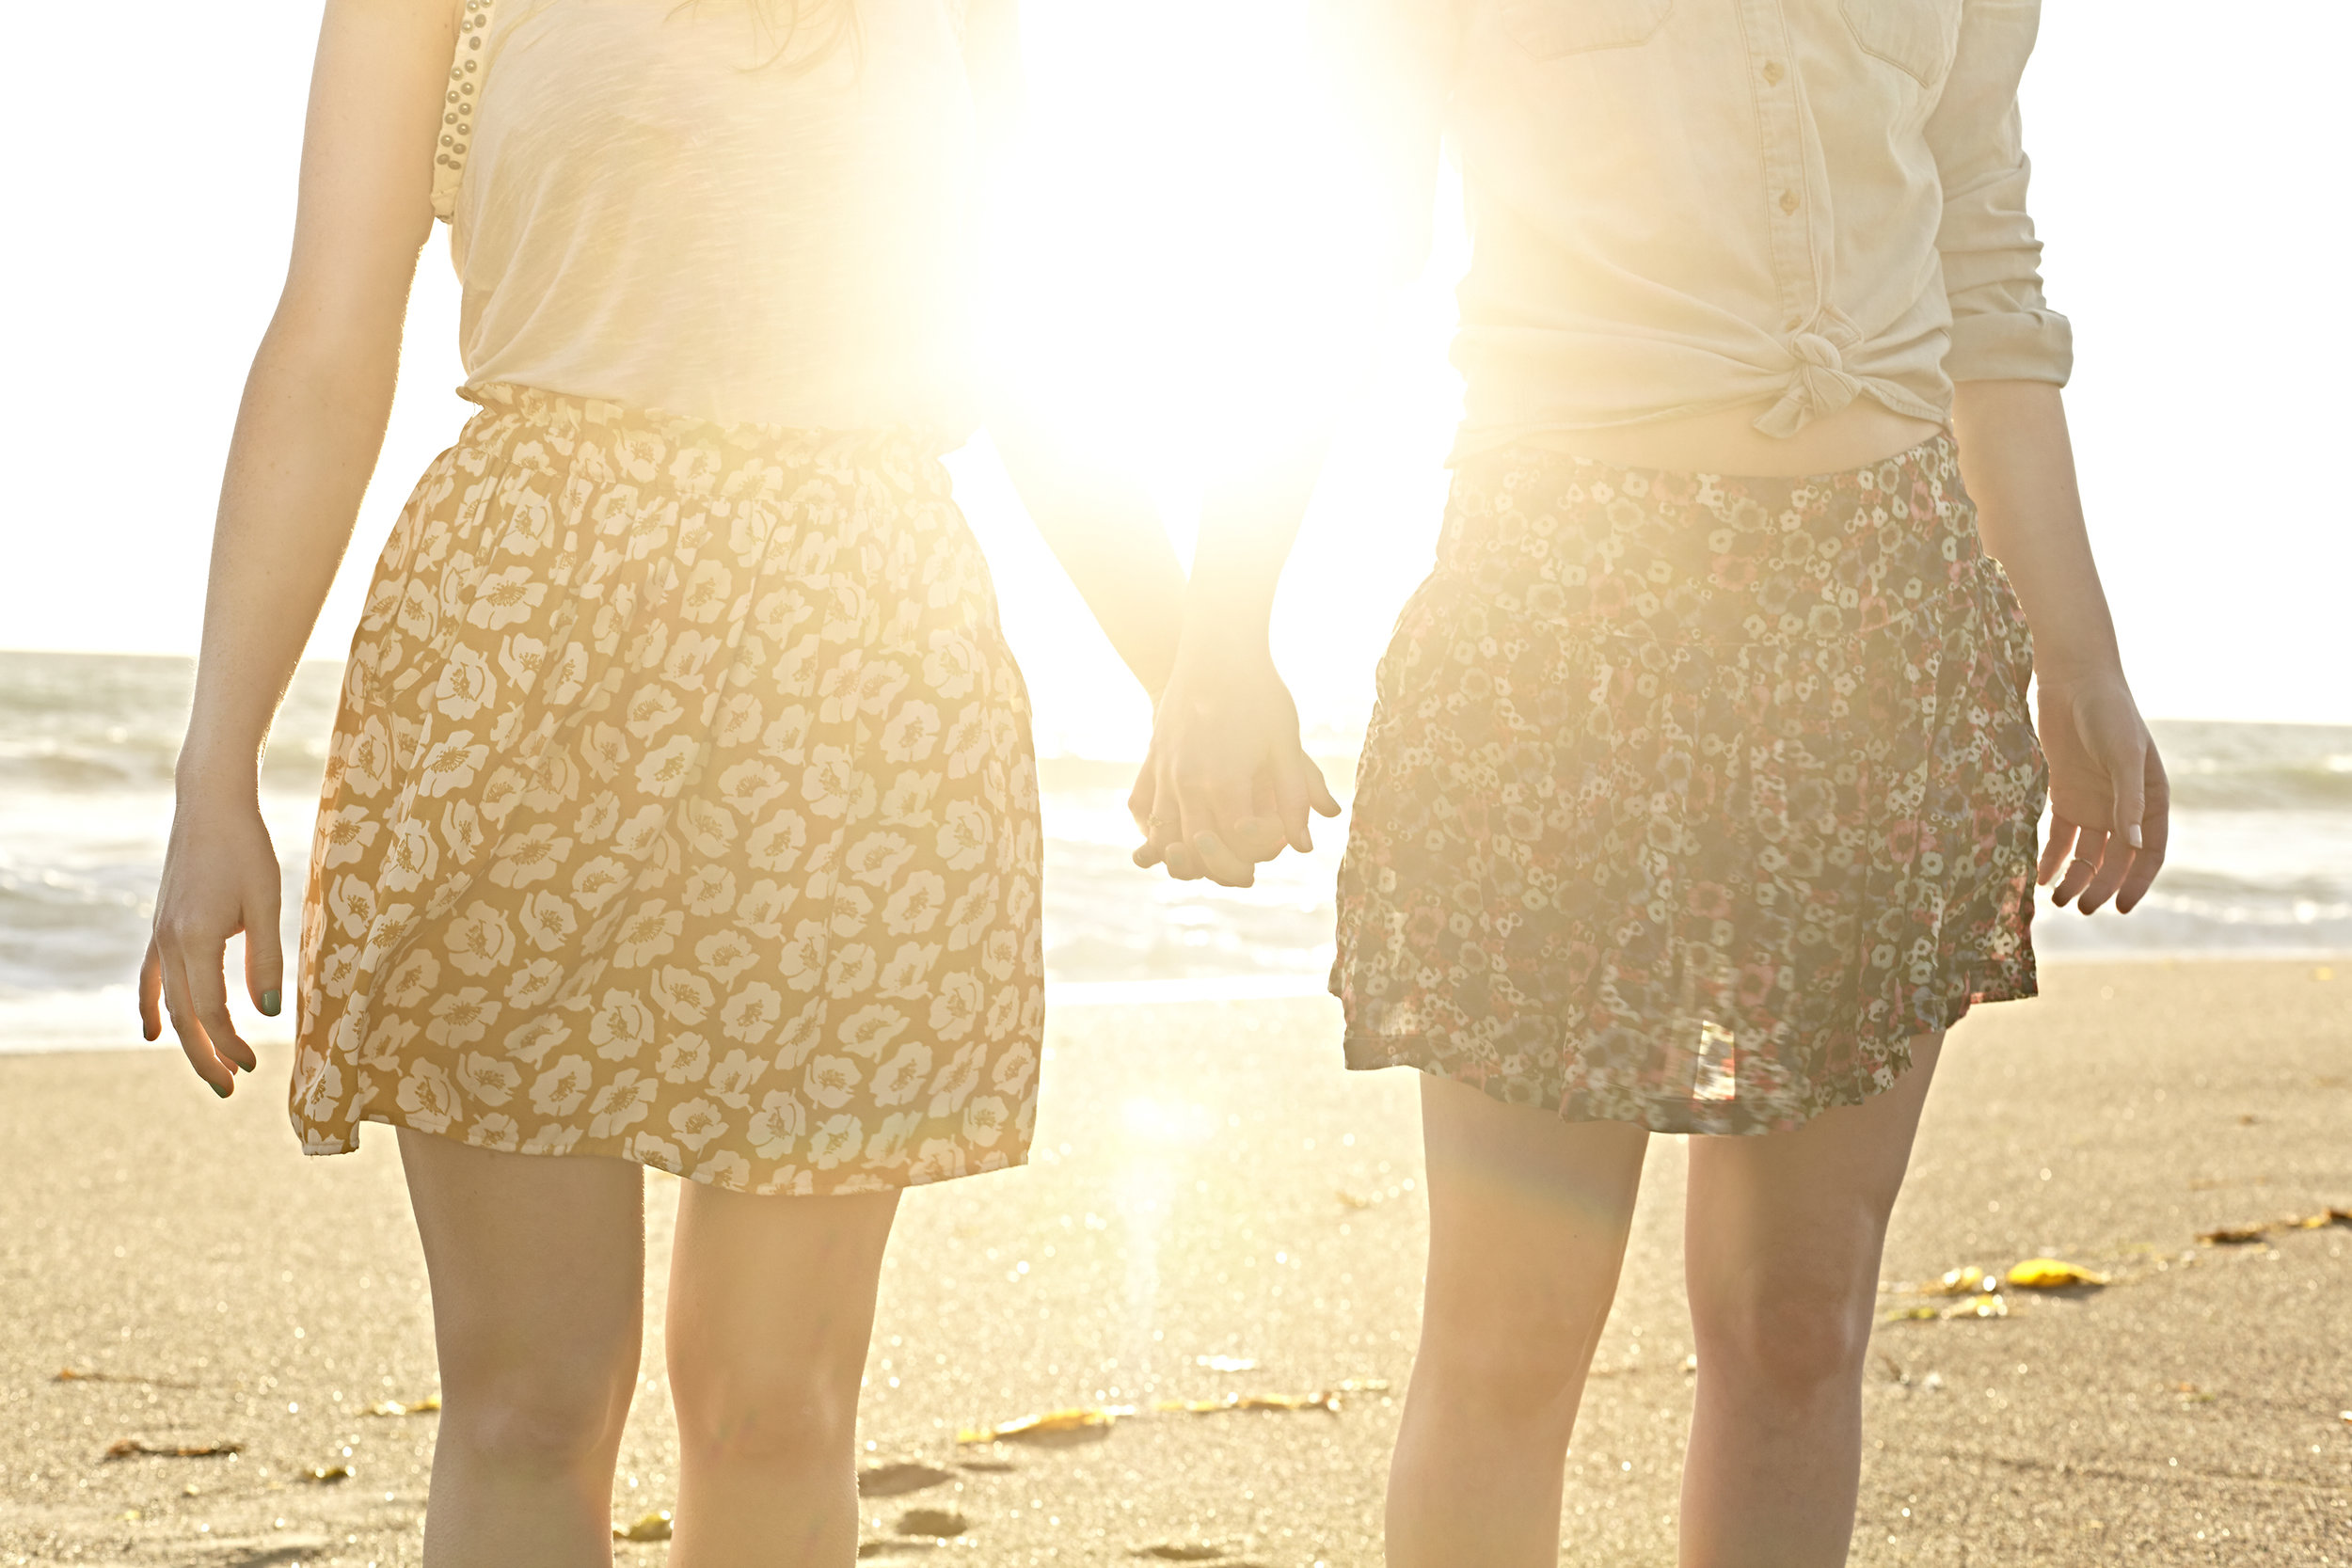 Two young women holding hands in the sunset at the beach